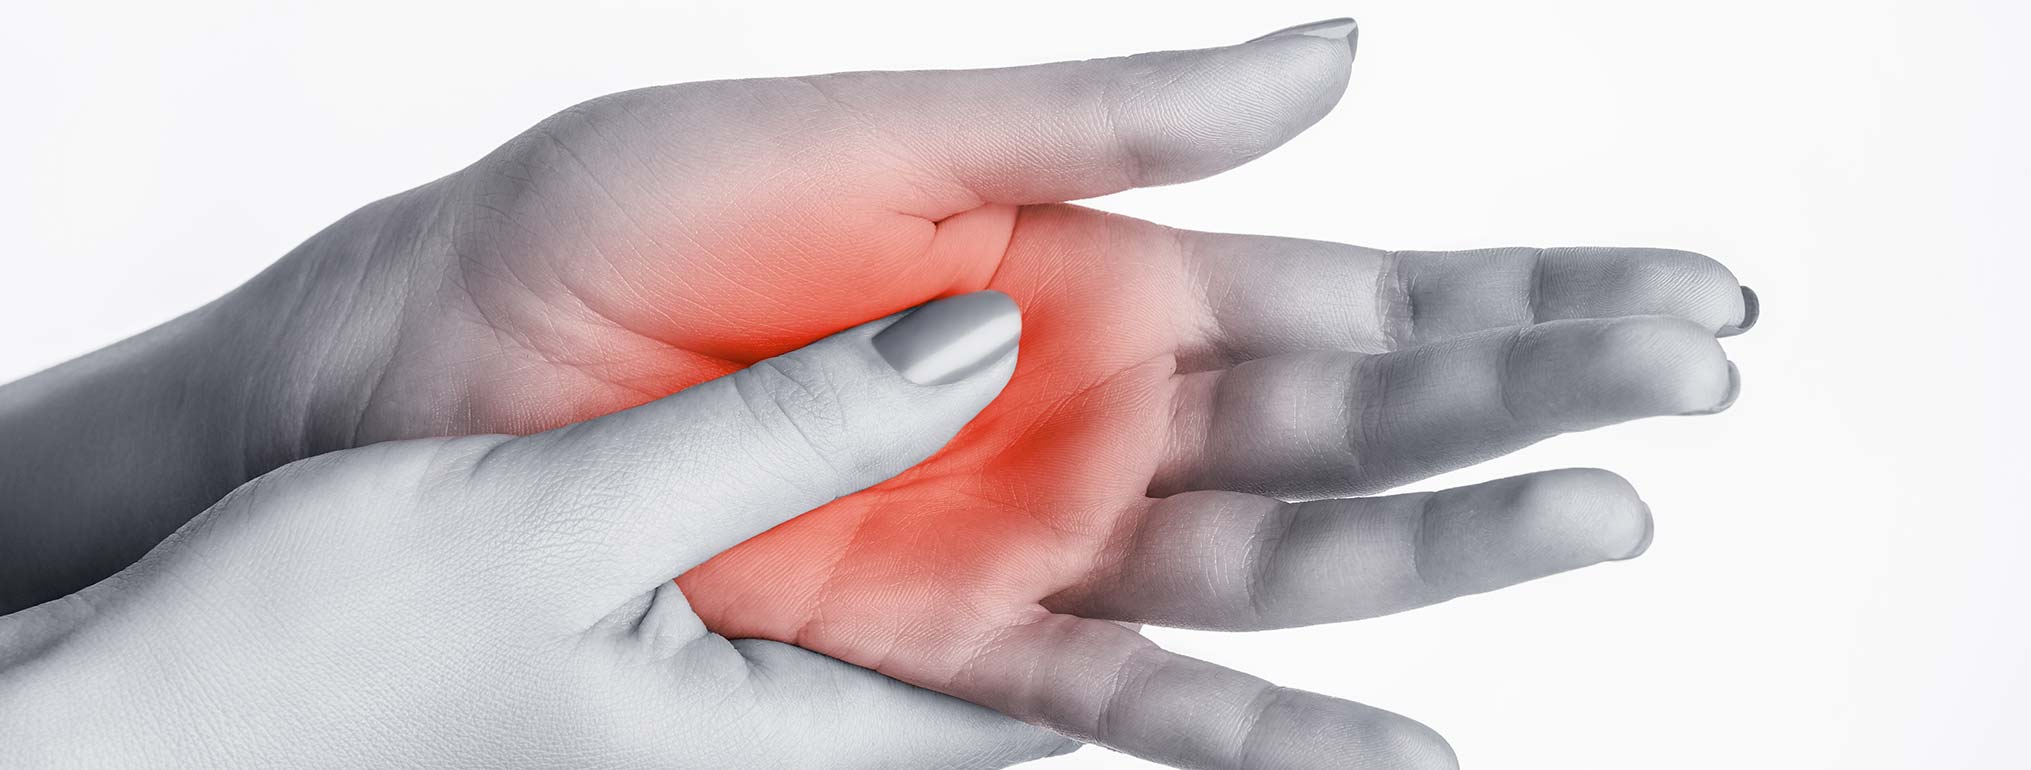 Paresthesia | How do I stop numbness, tingling, and 'pins